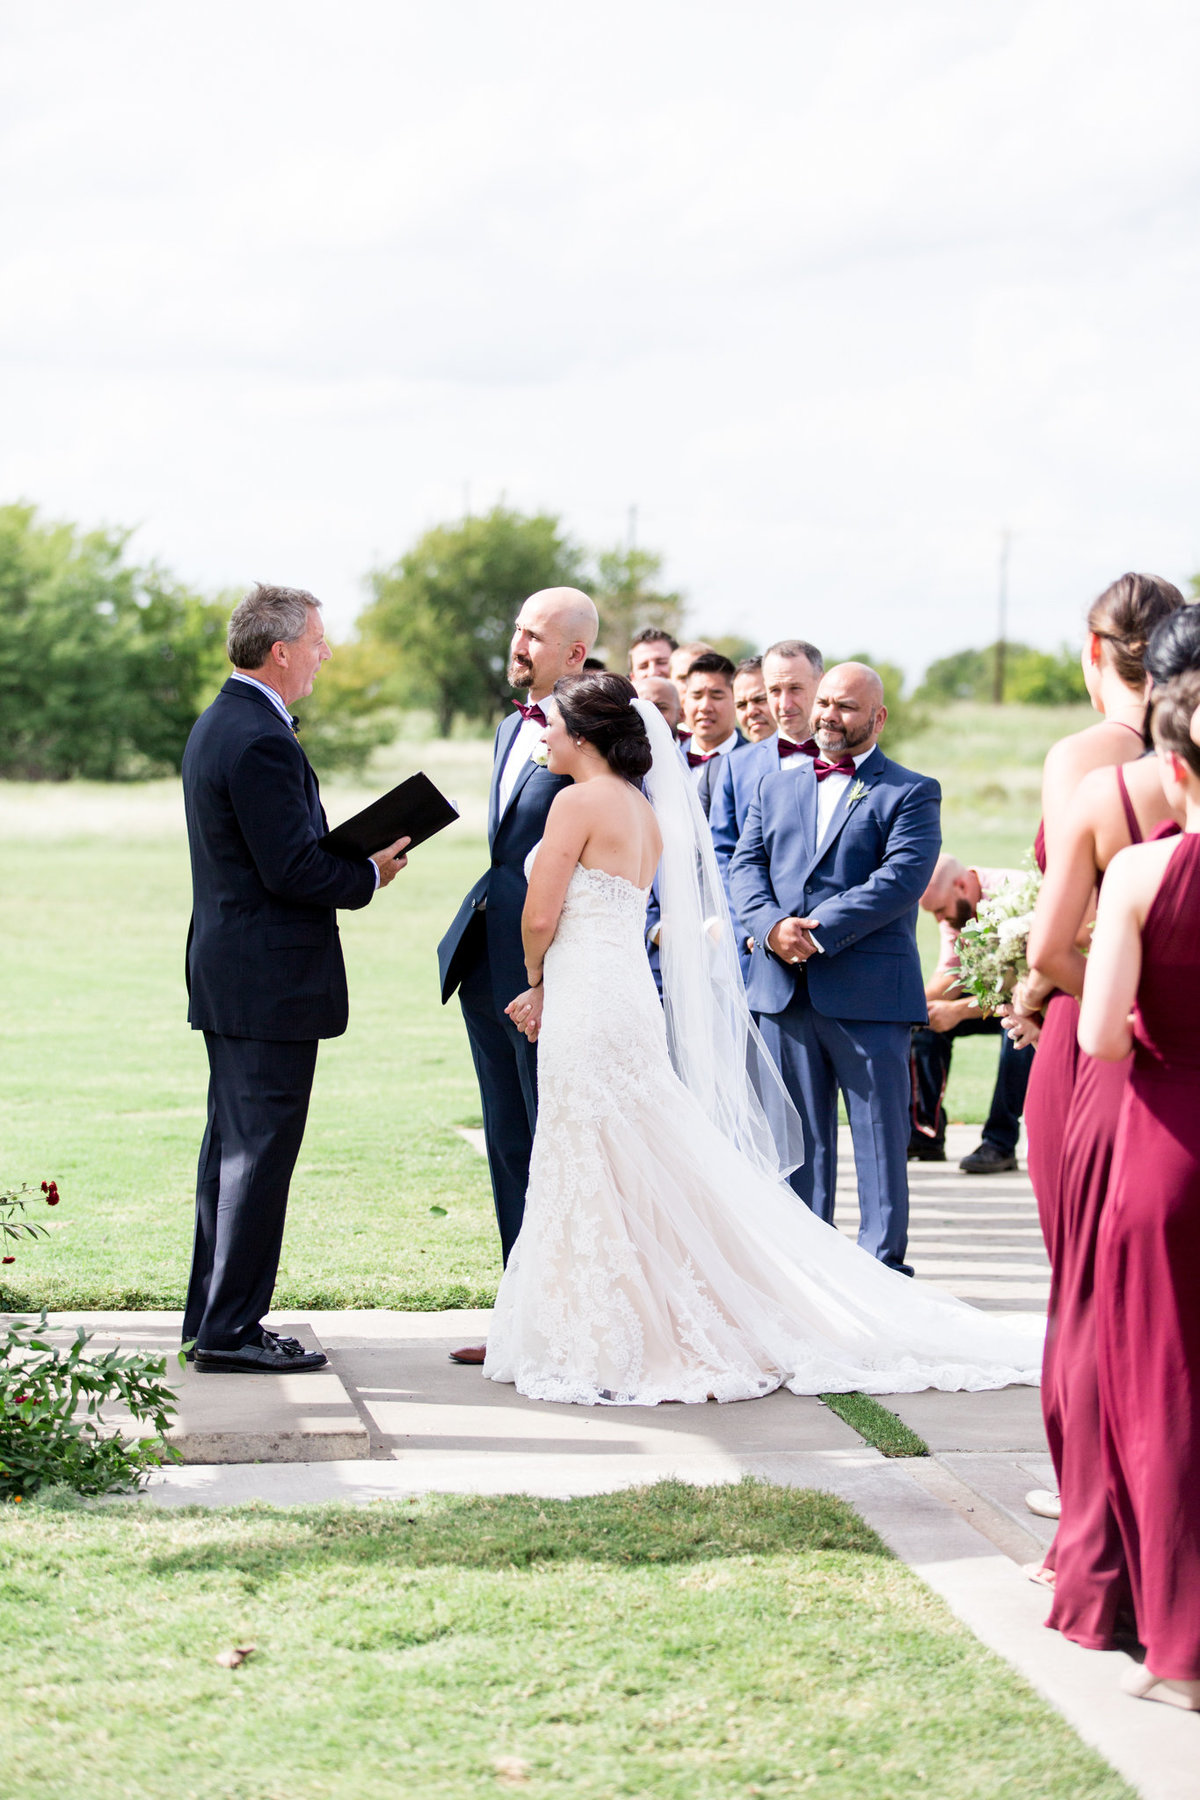 Nick & Sam Wedding | The Nest at Ruth Farms | Sami Kathryn Photography | Dallas Wedding Photographer-124